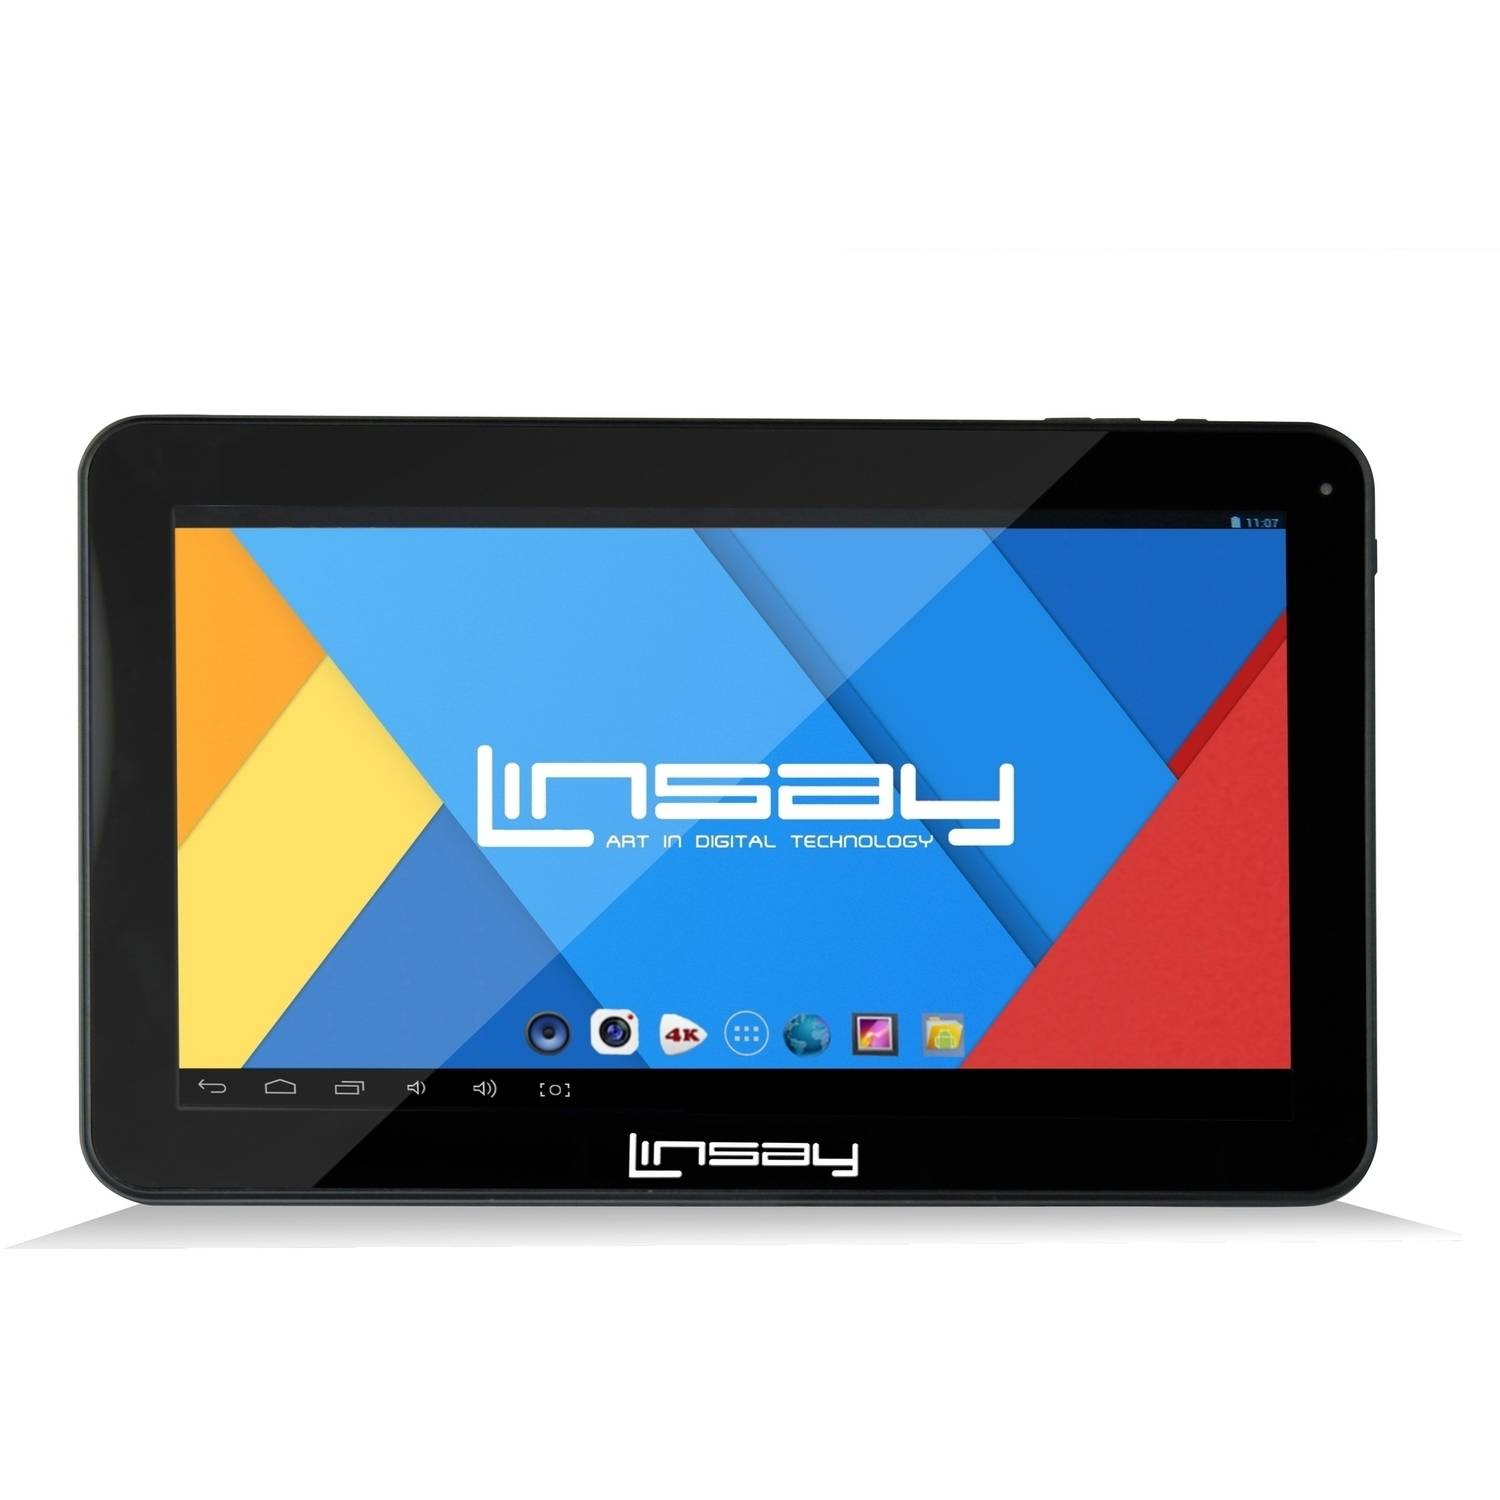 "Linsay F10XHD with WiFi 10.1"" Touchscreen Tablet PC Featuring Android 4.4 (KitKat) Operating System"